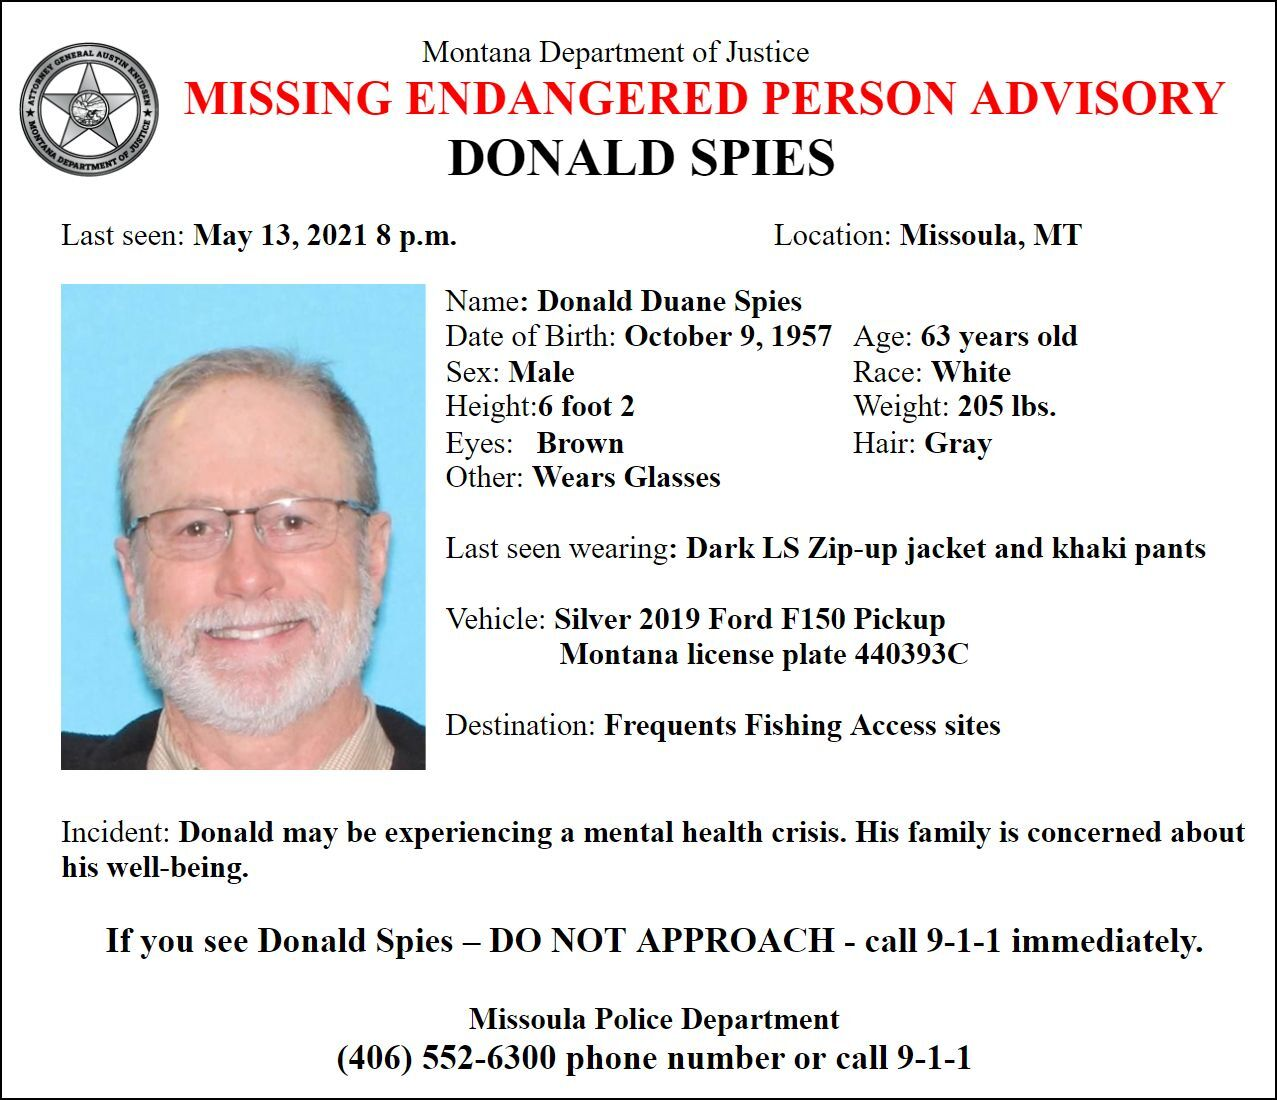 Missing-Endangered Person Advisory for Donald Spies